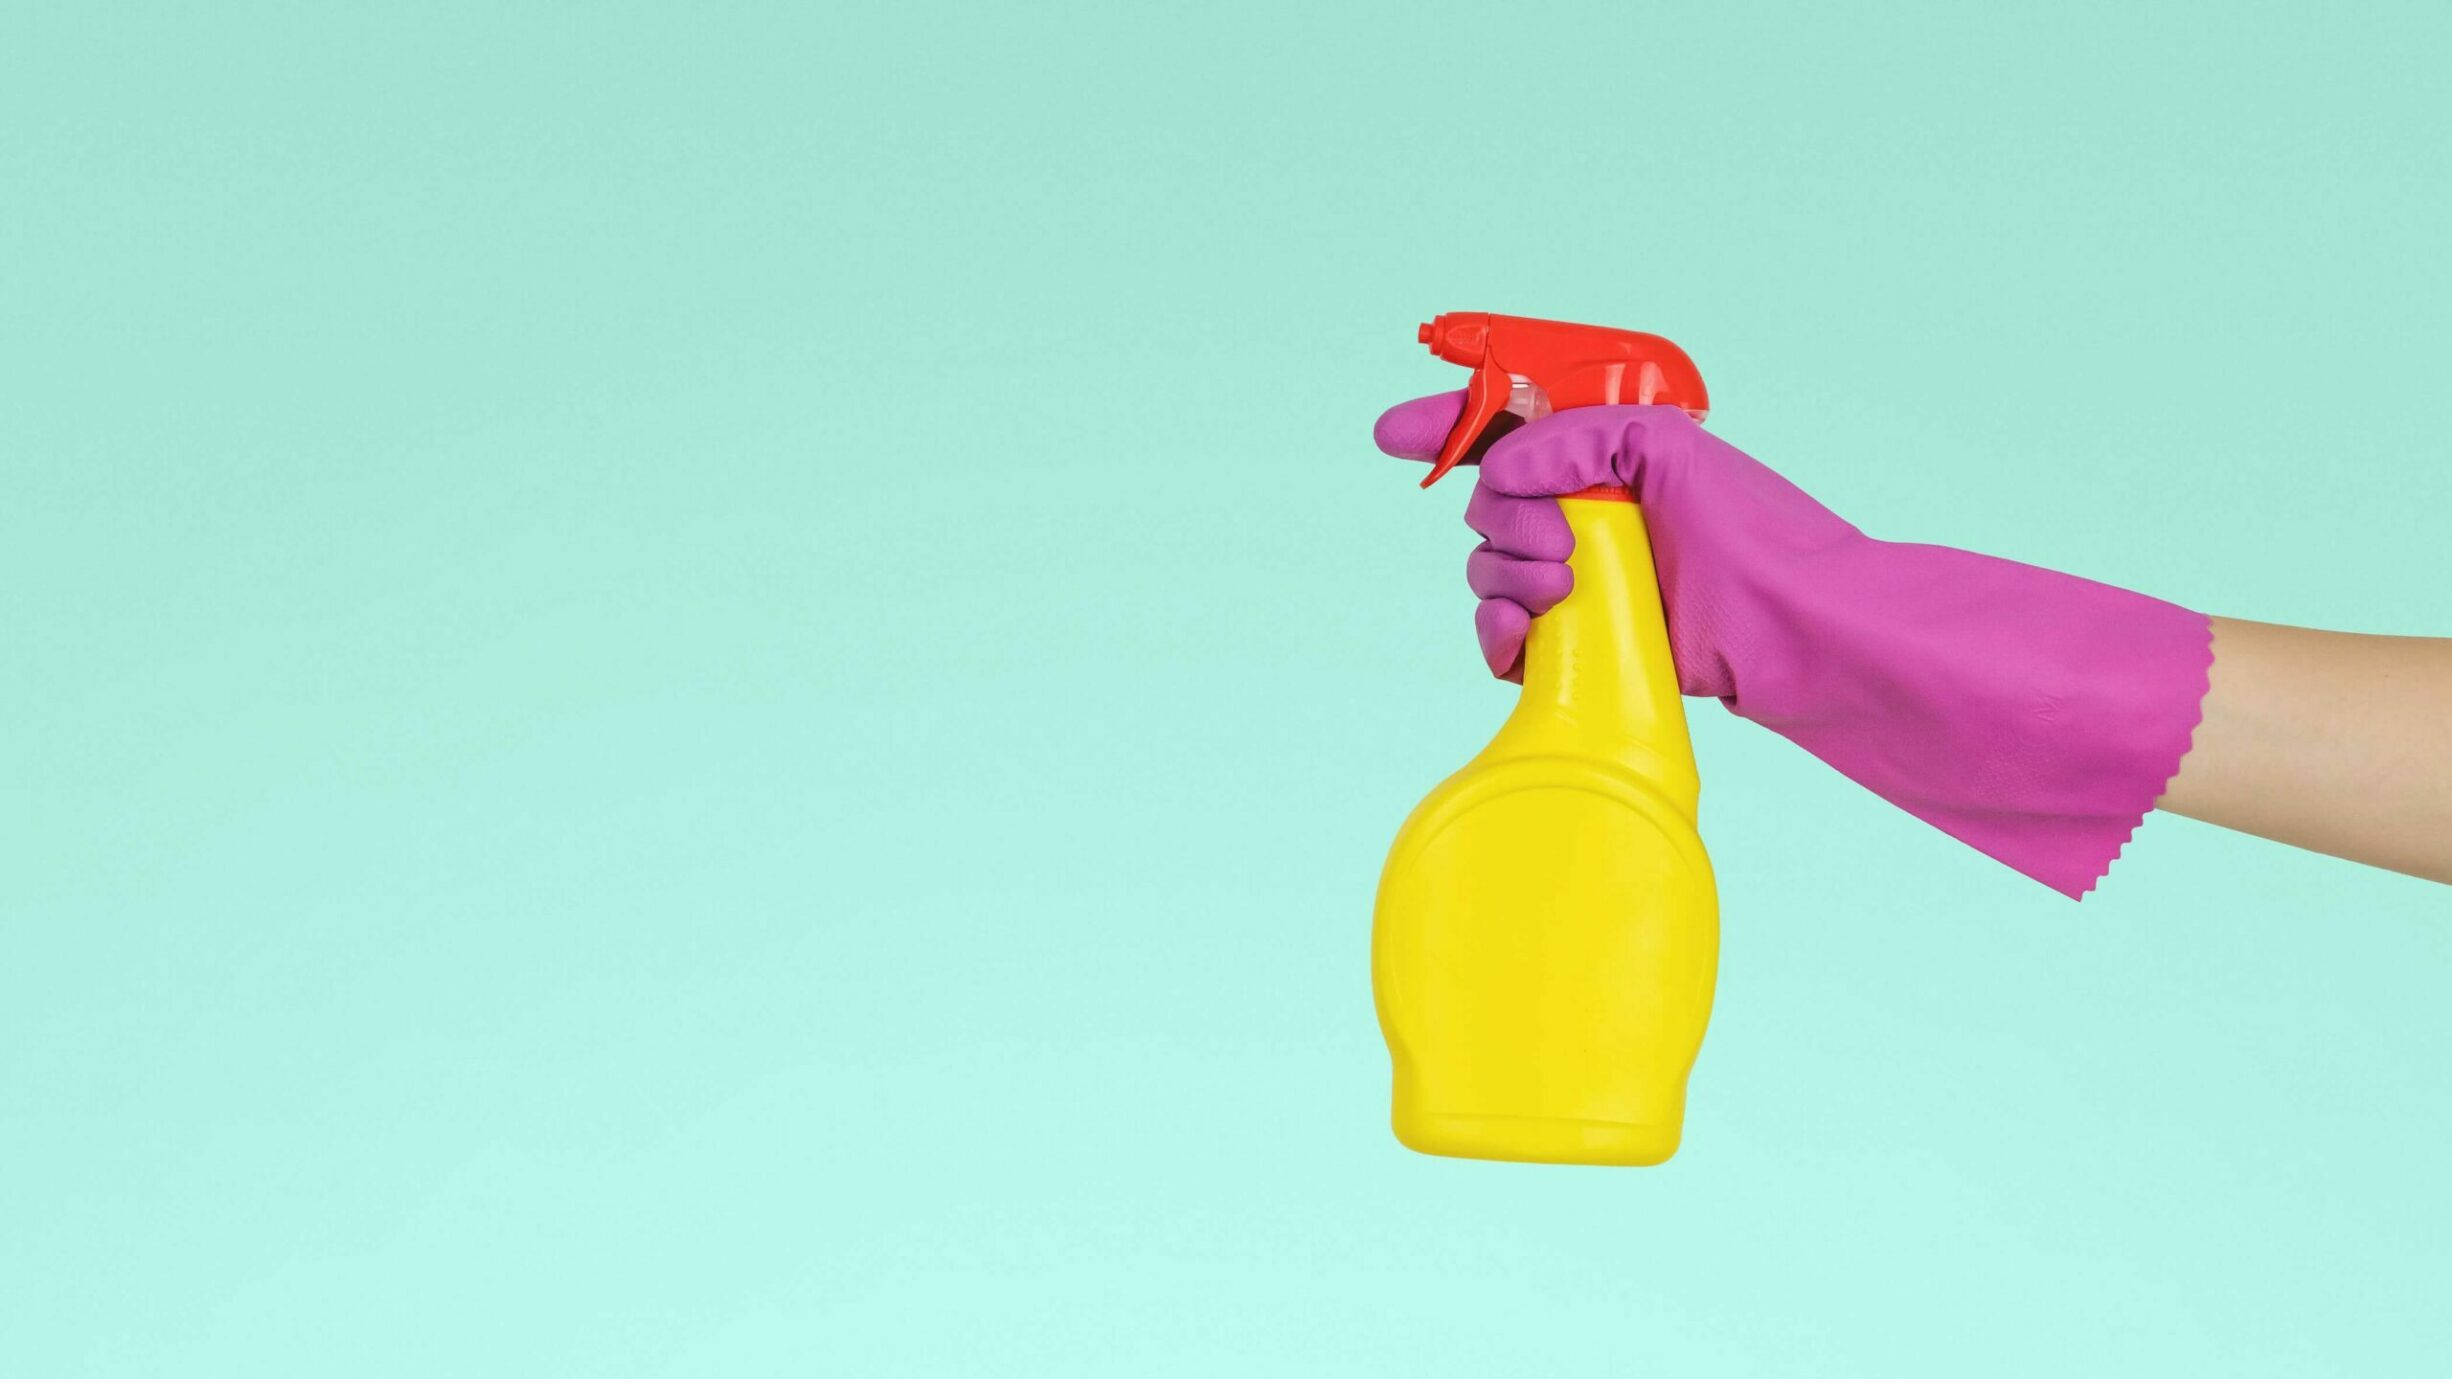 gloved hand holding a cleaning spray bottle